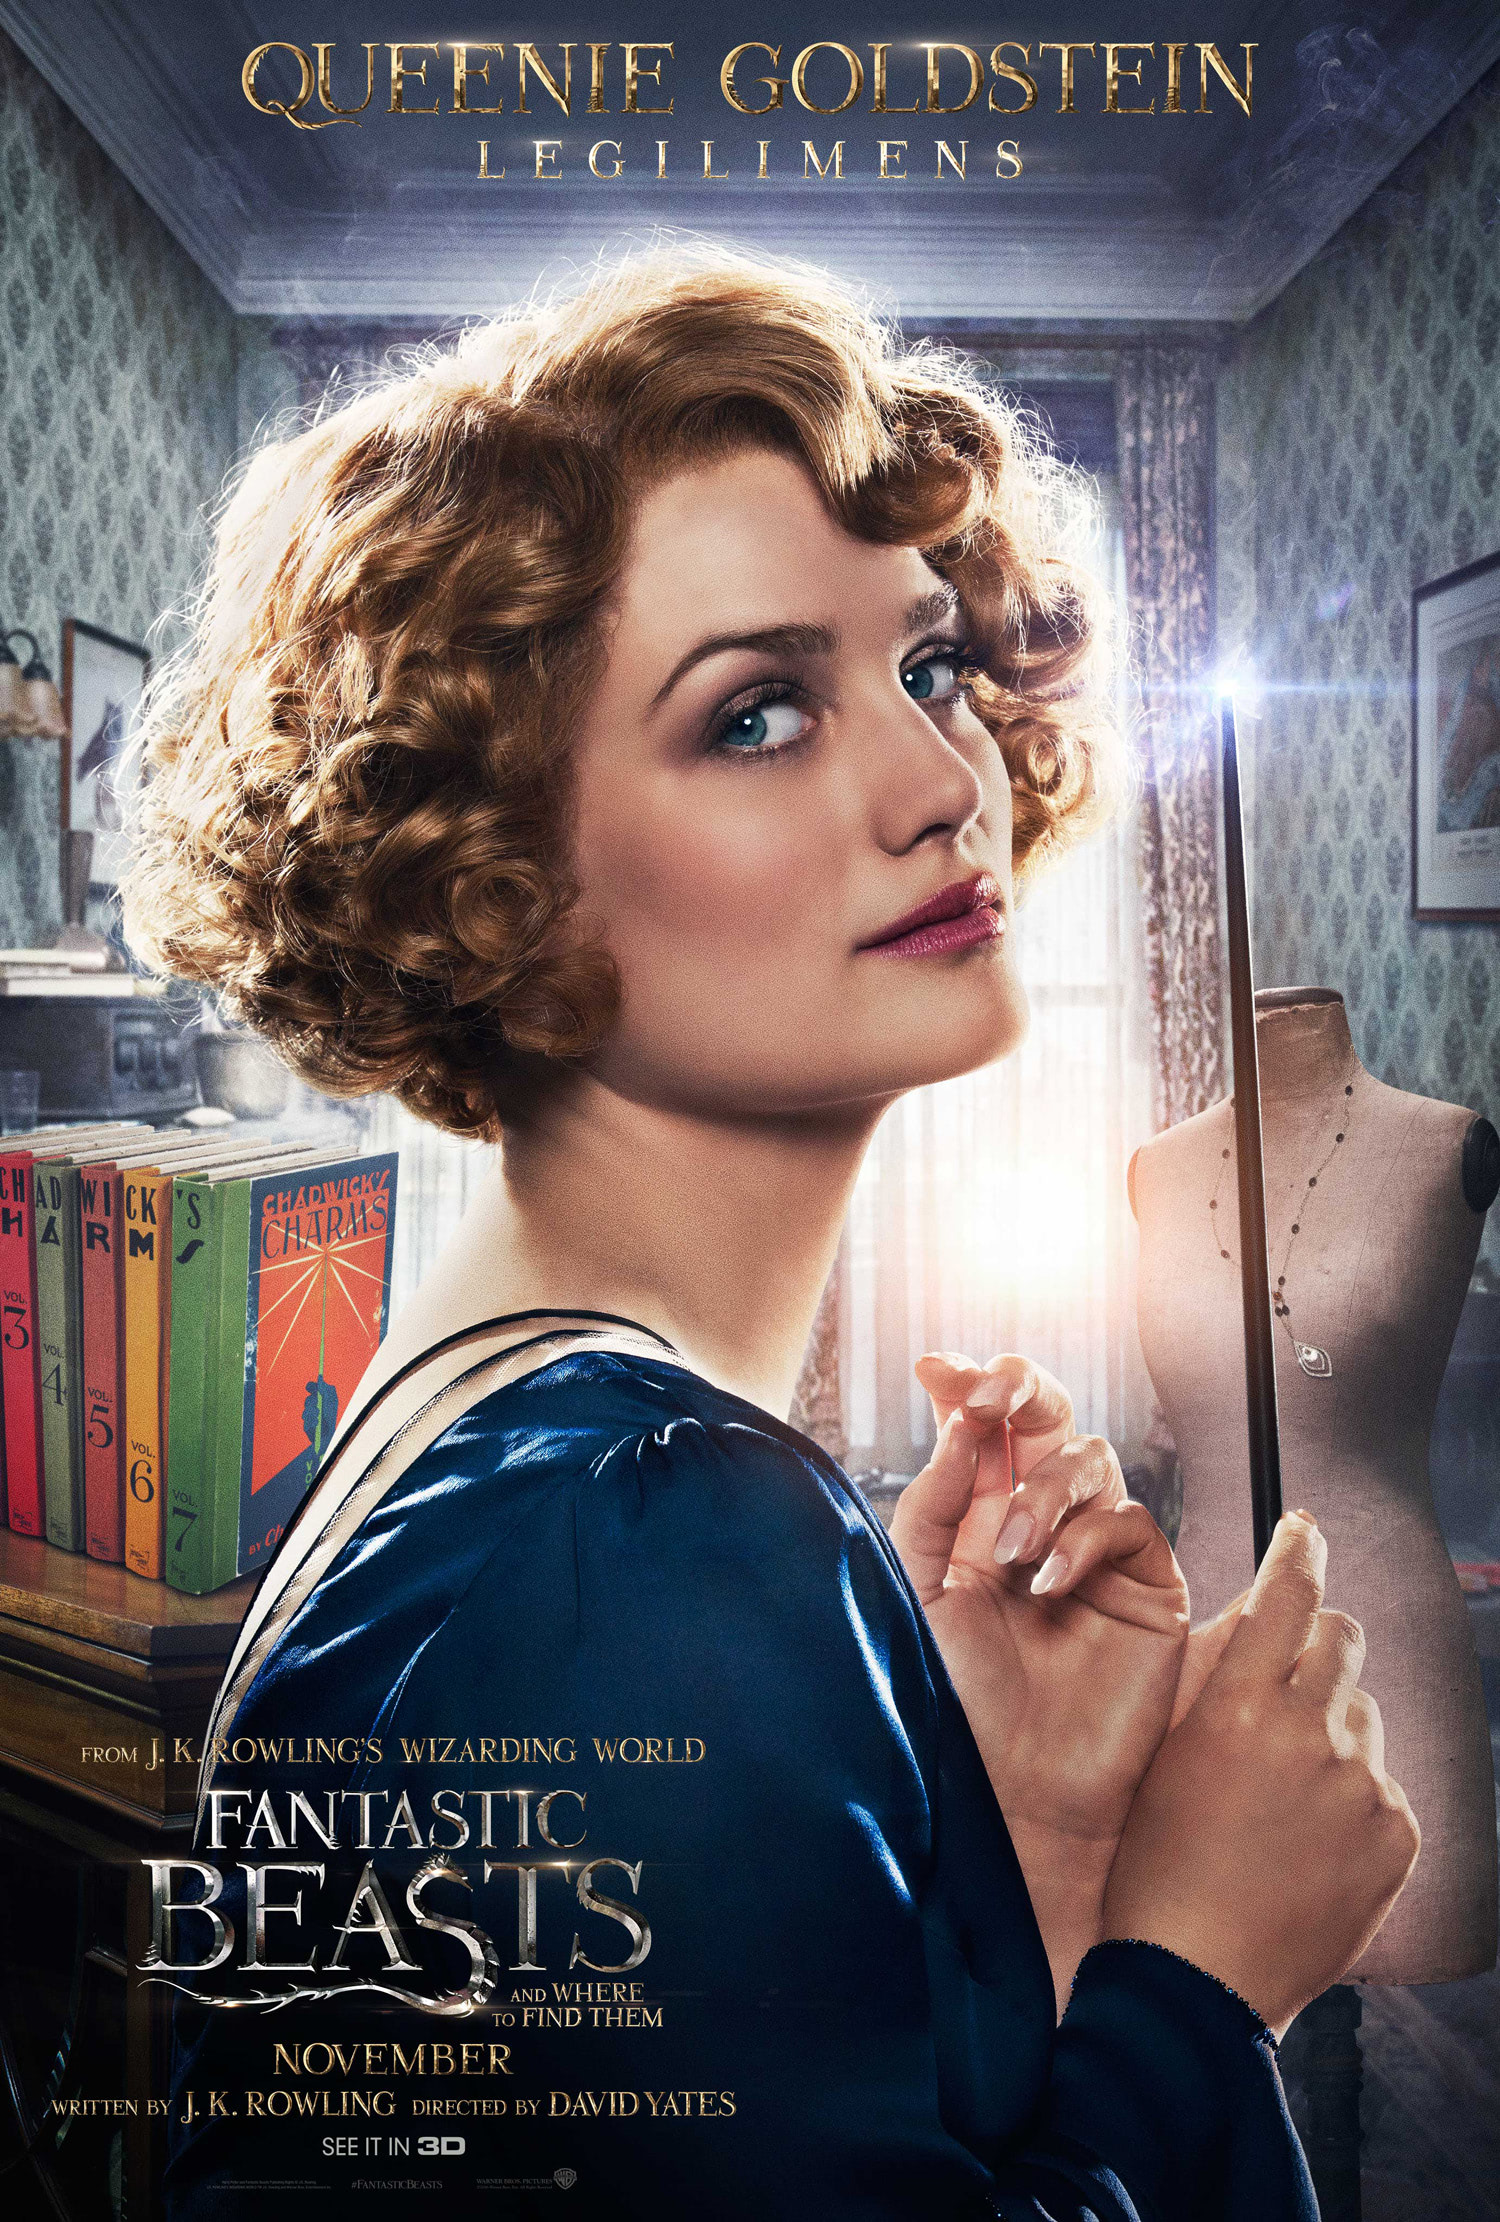 'Fantastic Beasts and Where to Find Them' Queenie poster